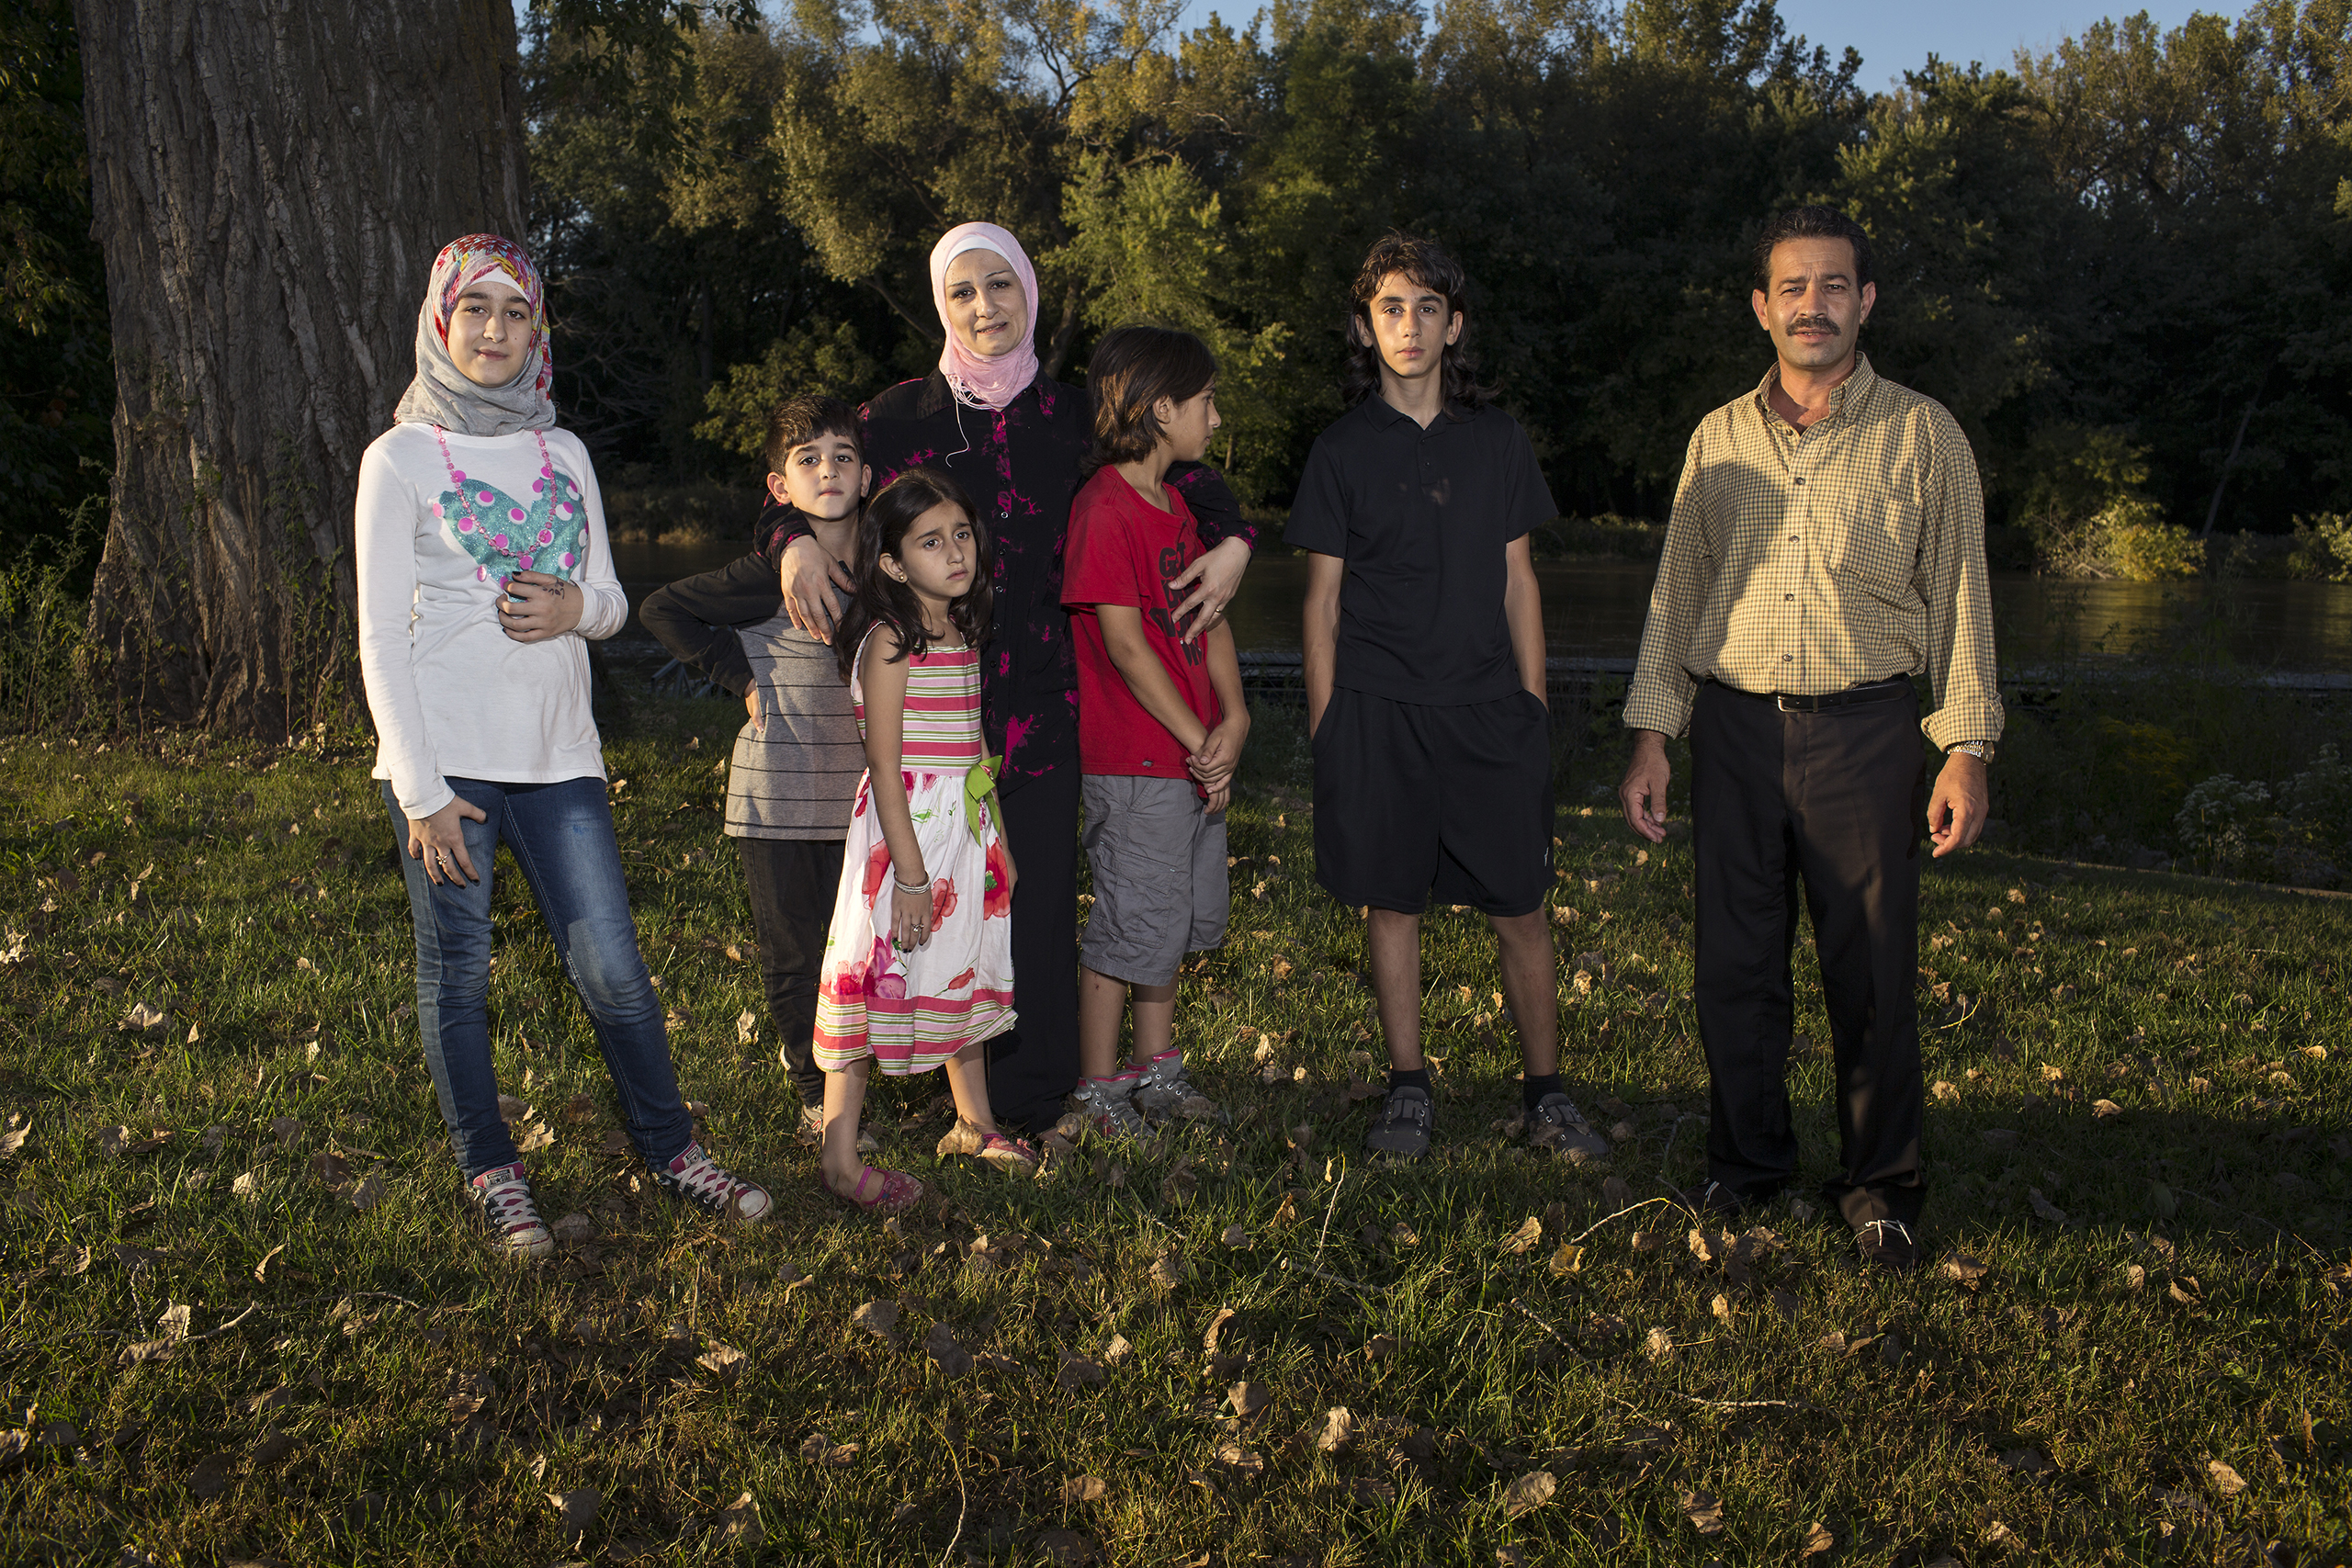 Ghazweh and Abdul Fattah at a park in Des Moines in 2016 with their children, from left to right: Sedra, Mutaz, Hala, Haidar and Nazeer. That year, the Tameems became the first Syrian refugee family to be resettled in Iowa. In the four decades of the U.S. refugee resettlement program, America has safely resettled more than three million of the world's most vulnerable refugees with an average annual cap set at 95,000 prior to the Trump administration.